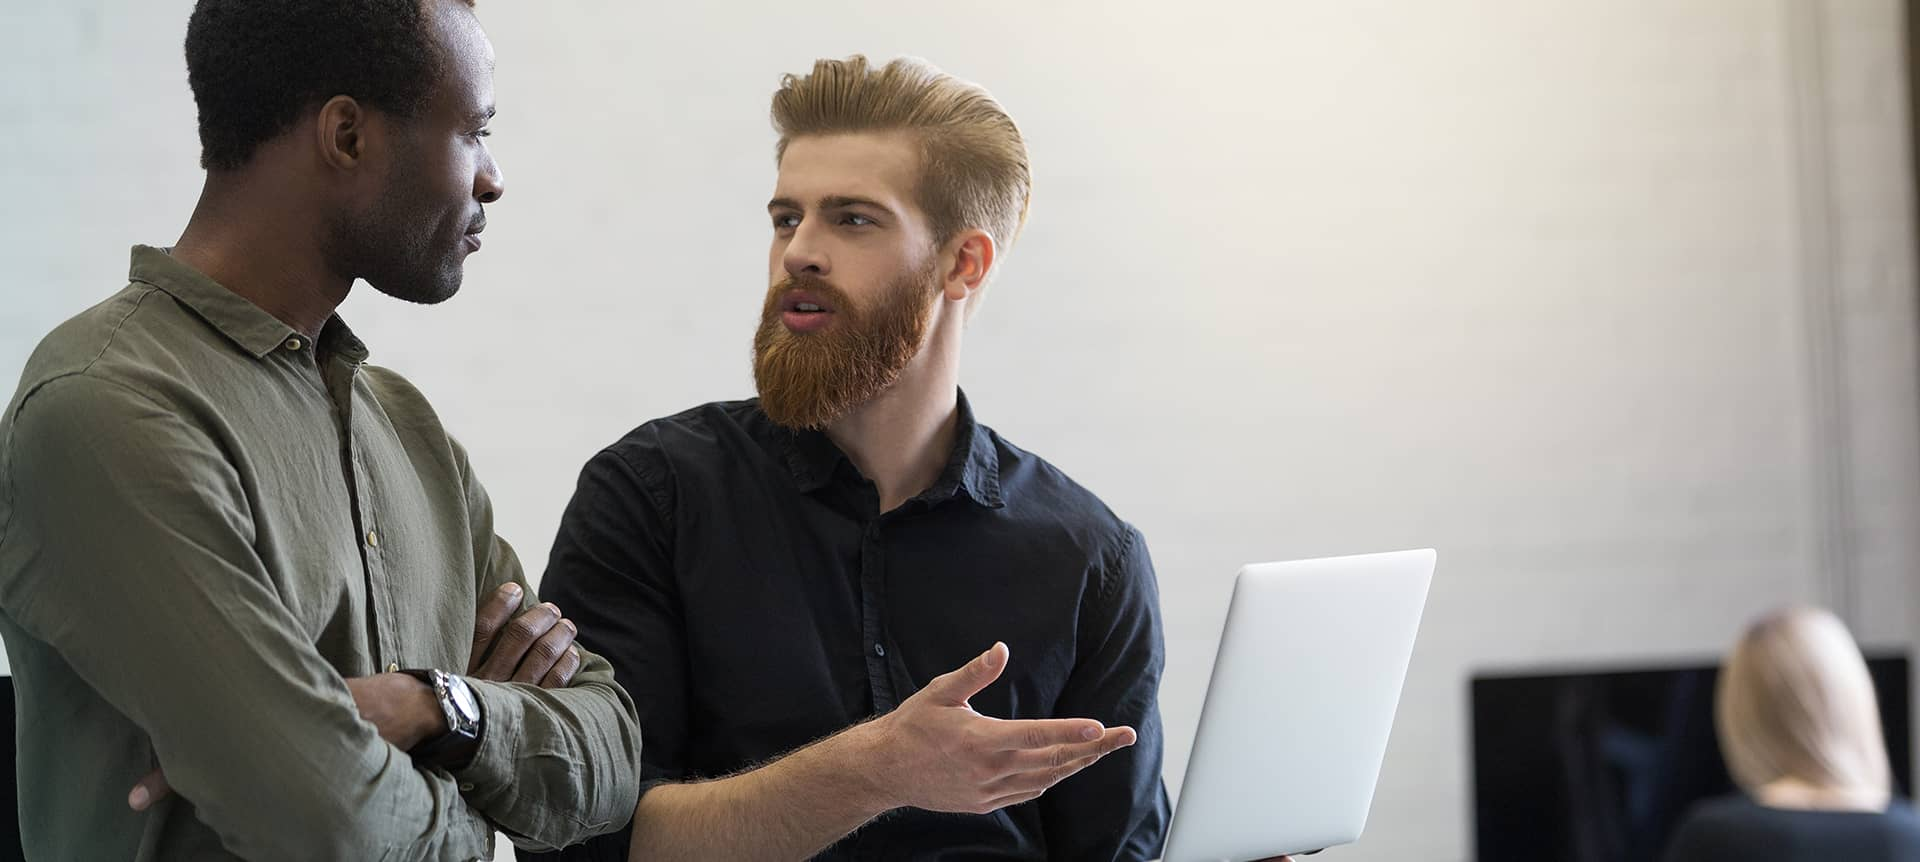 candidates using video interviewing software